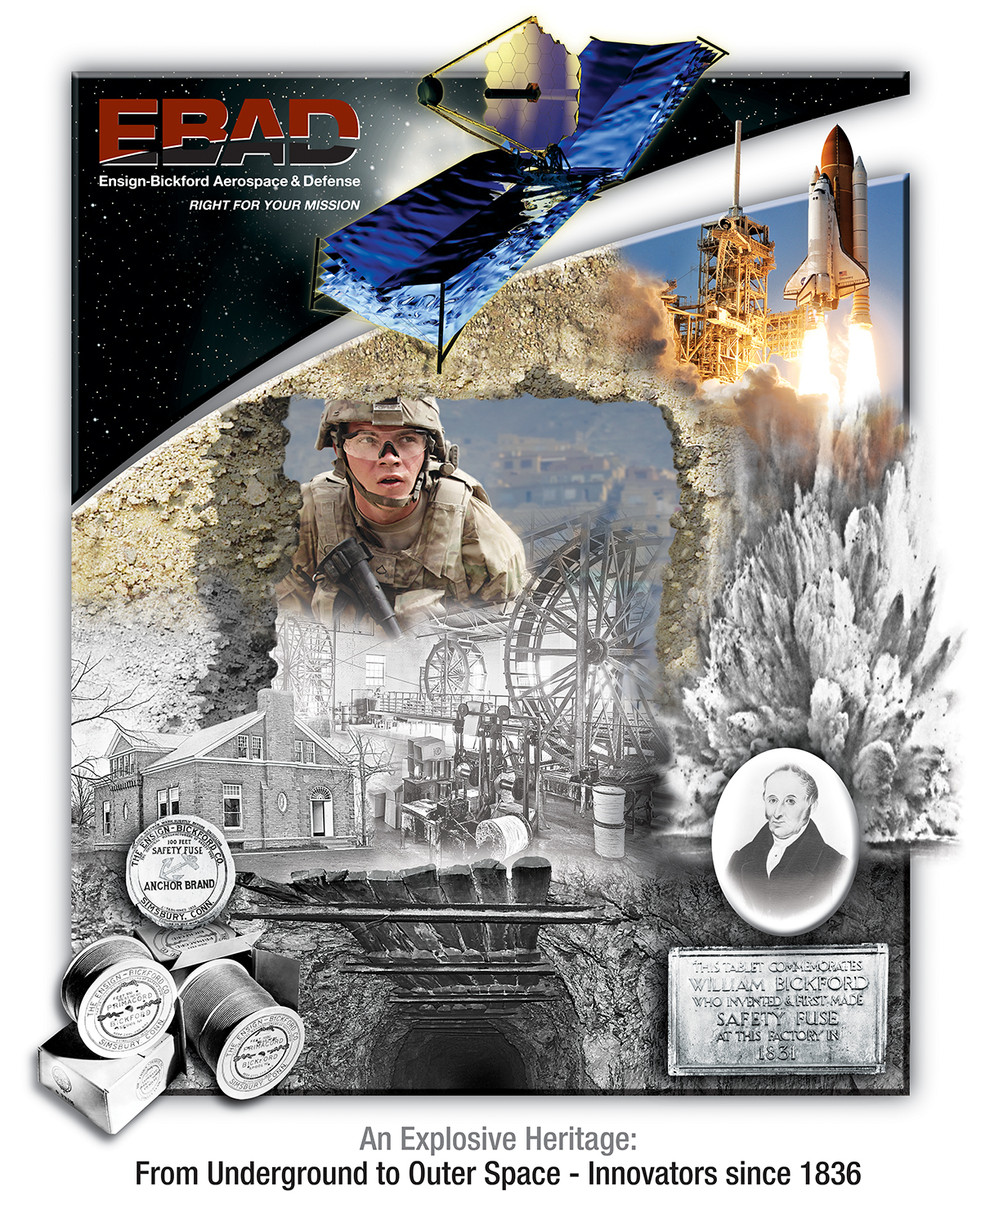 Ensign Bickford Aerospace & Defense (EBAD), CT - Then & Now Poster